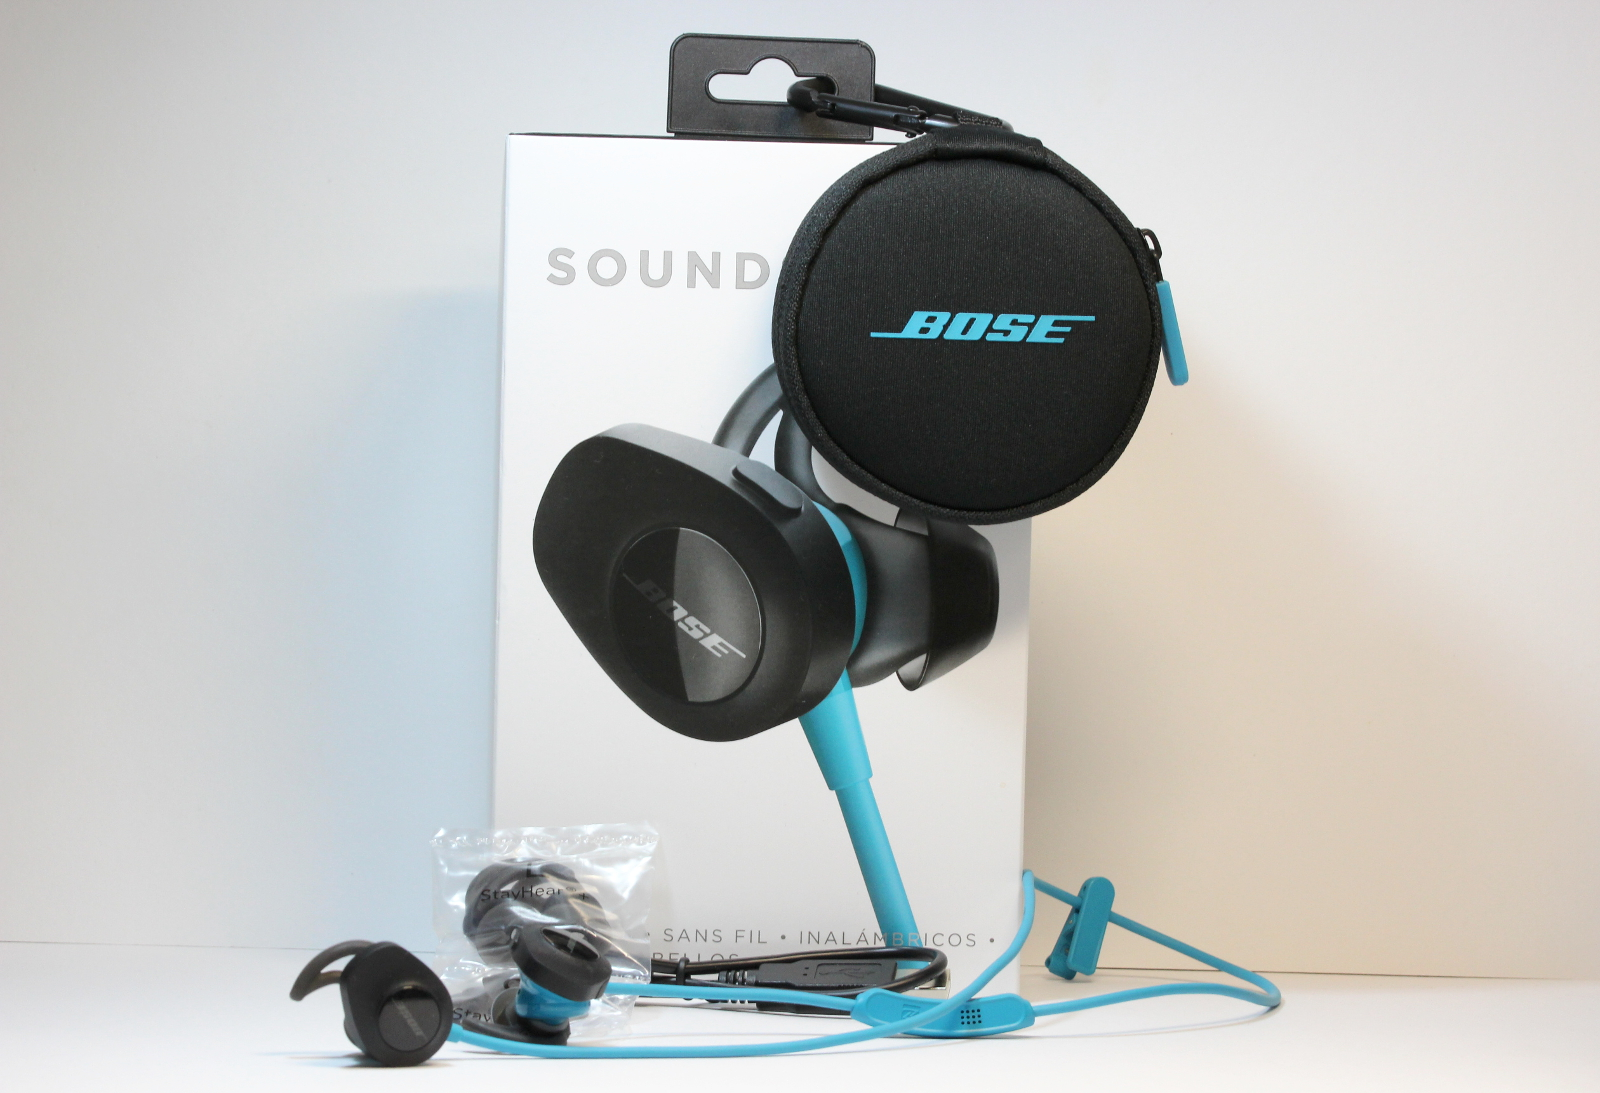 Lieferumfang des Bose SoundSport Wireless